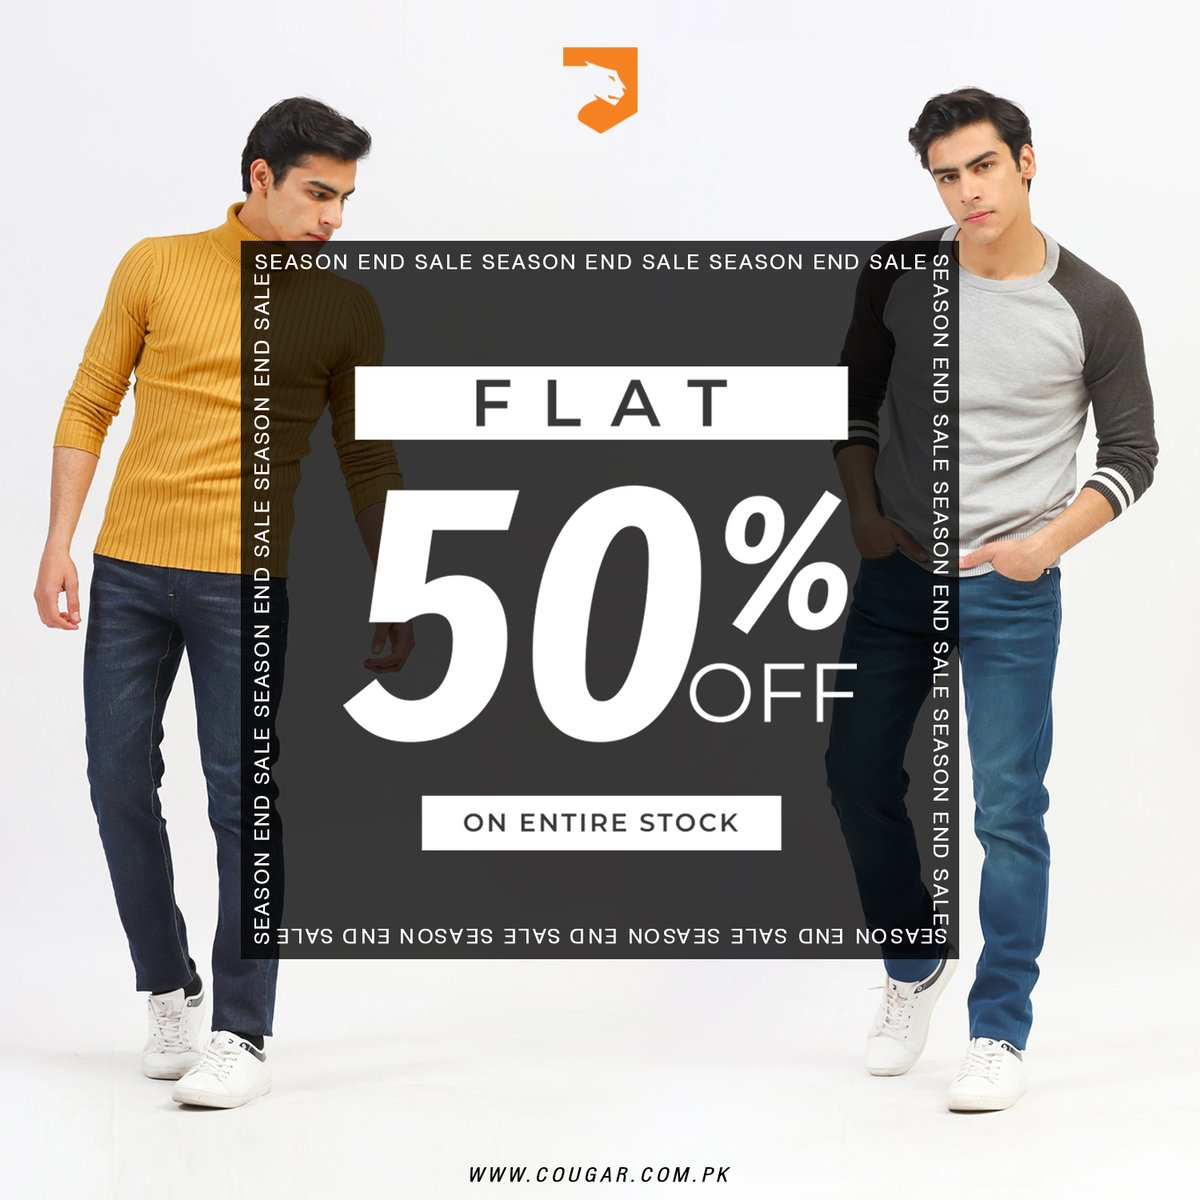 All New Jackets at FLAT 50% OFF on Season End Sale. For more details:    #cougarclothing #cougarcrew #jointhecrew #eoss #newstyles #sale #men #onlineshopping #lahore